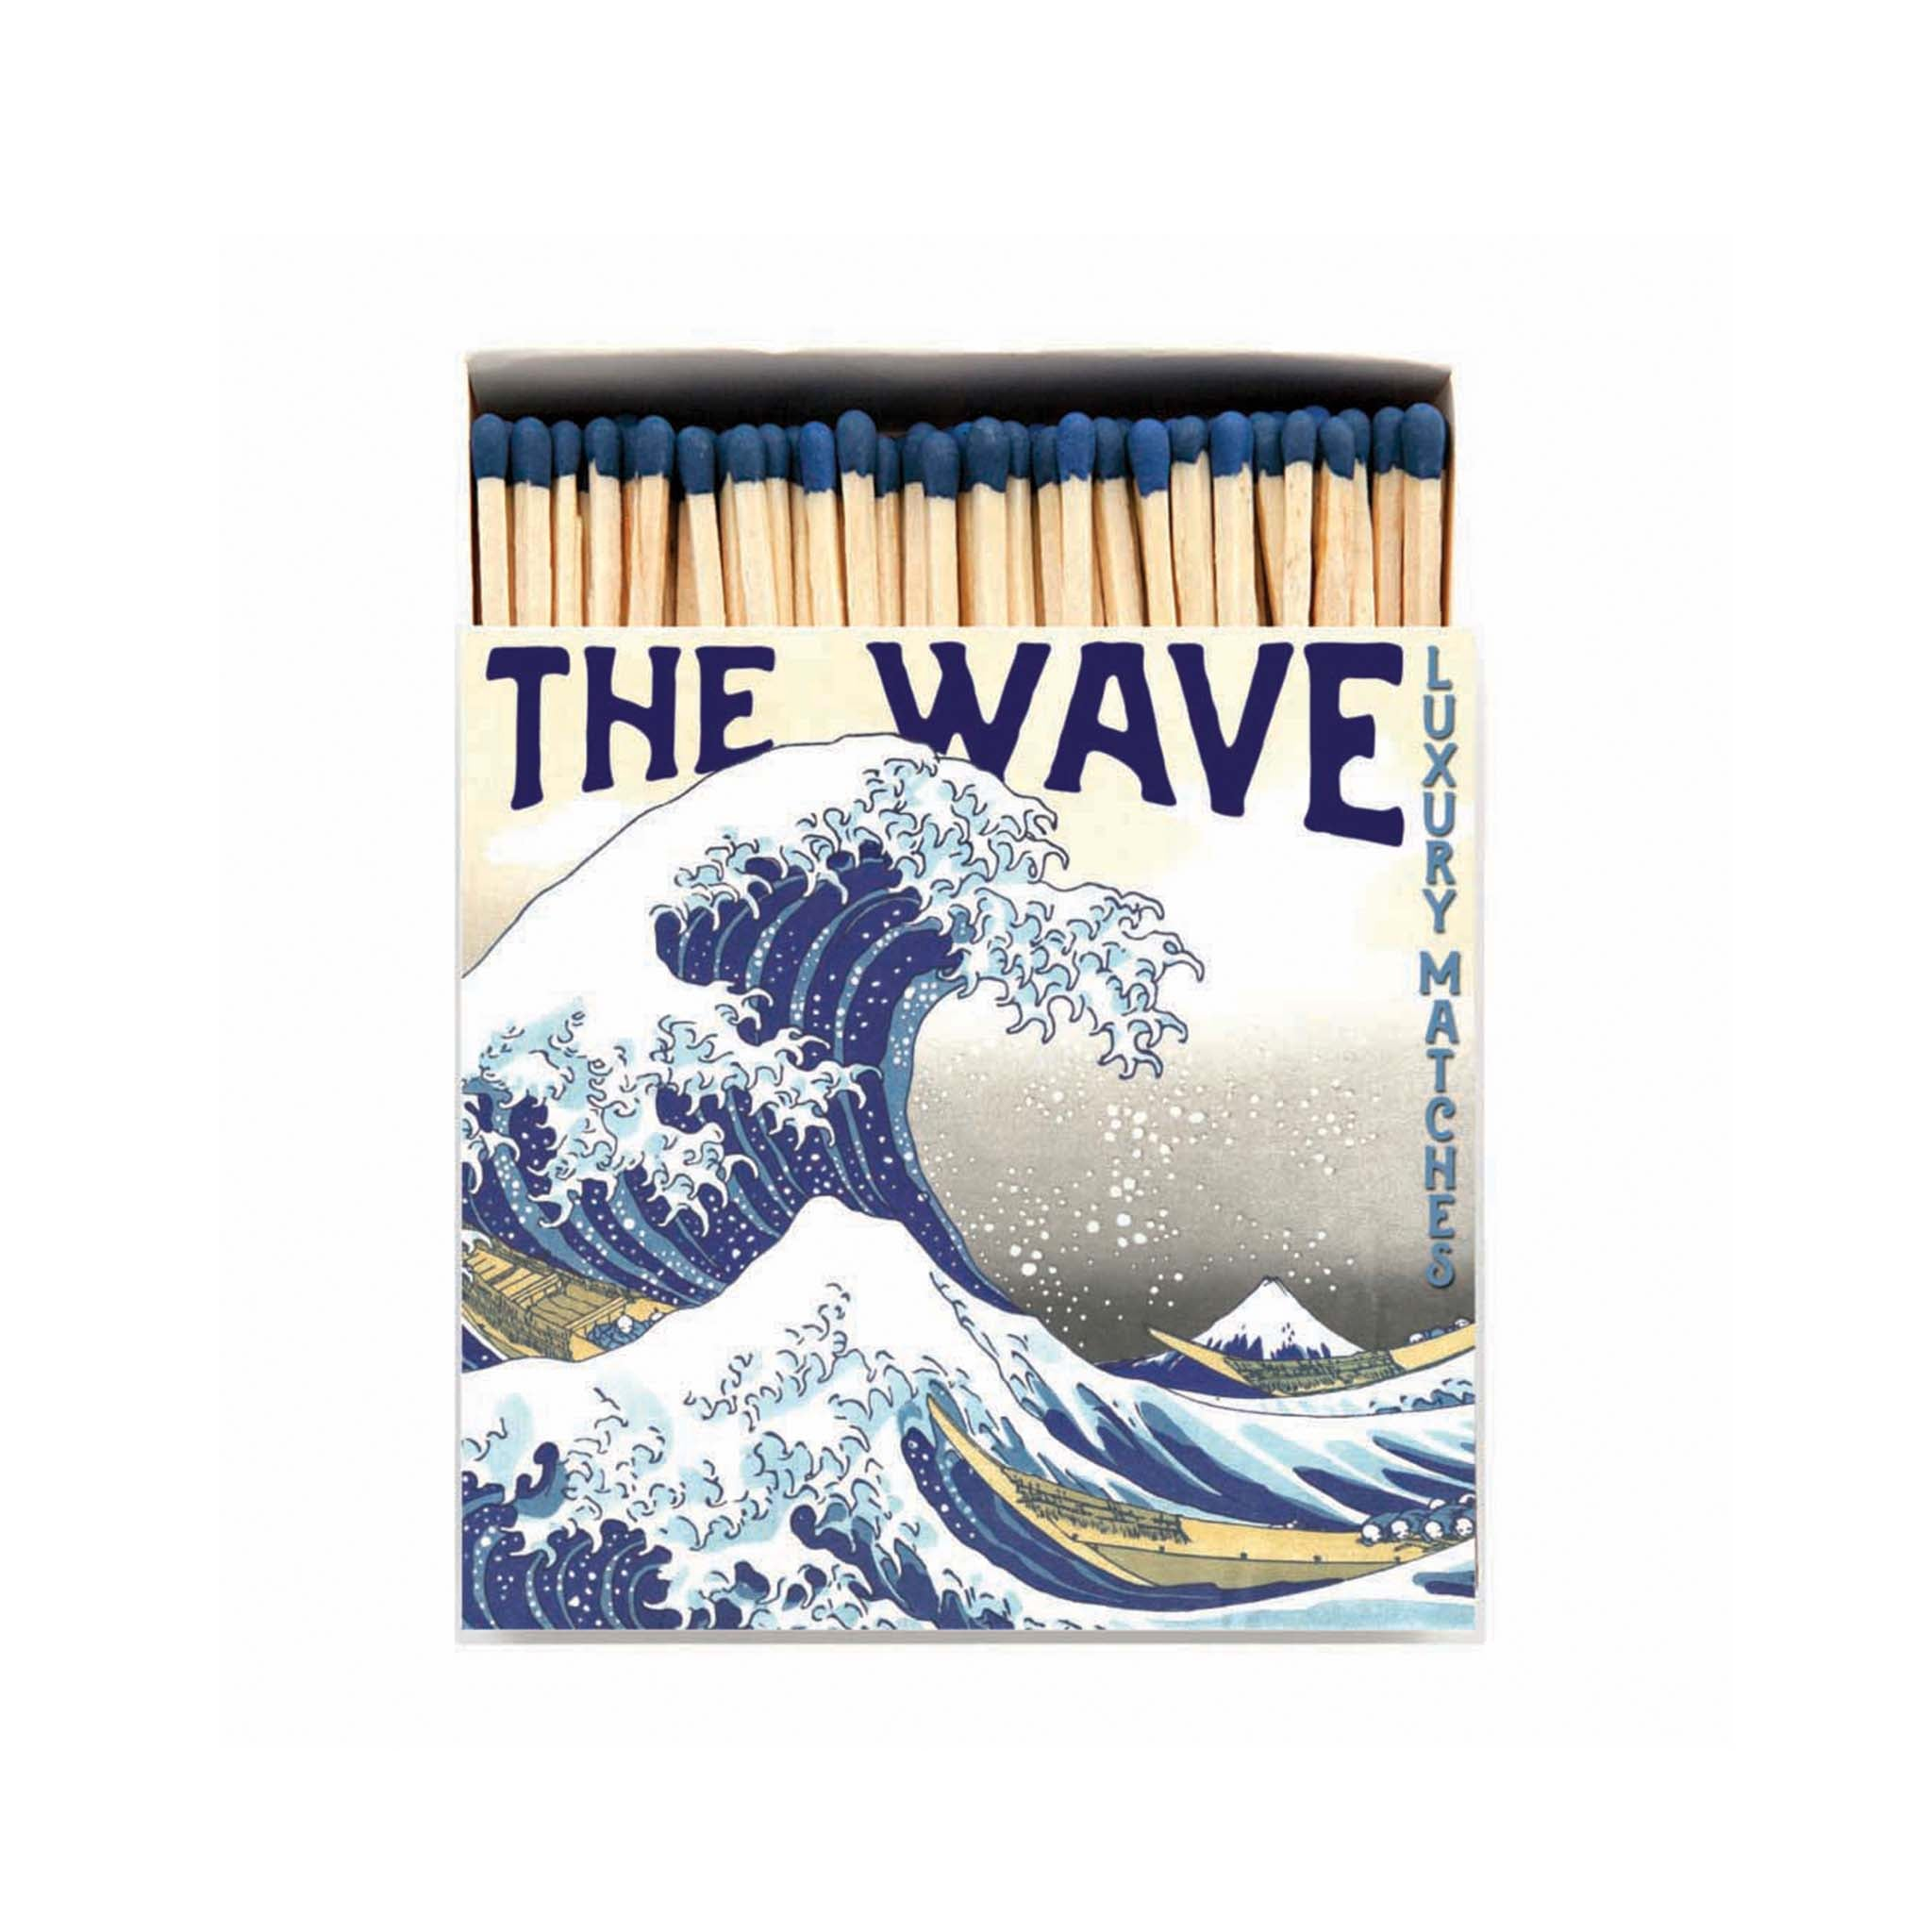 Archivist The Wave Luxury Safety Matches Cookware Household & Cleaning